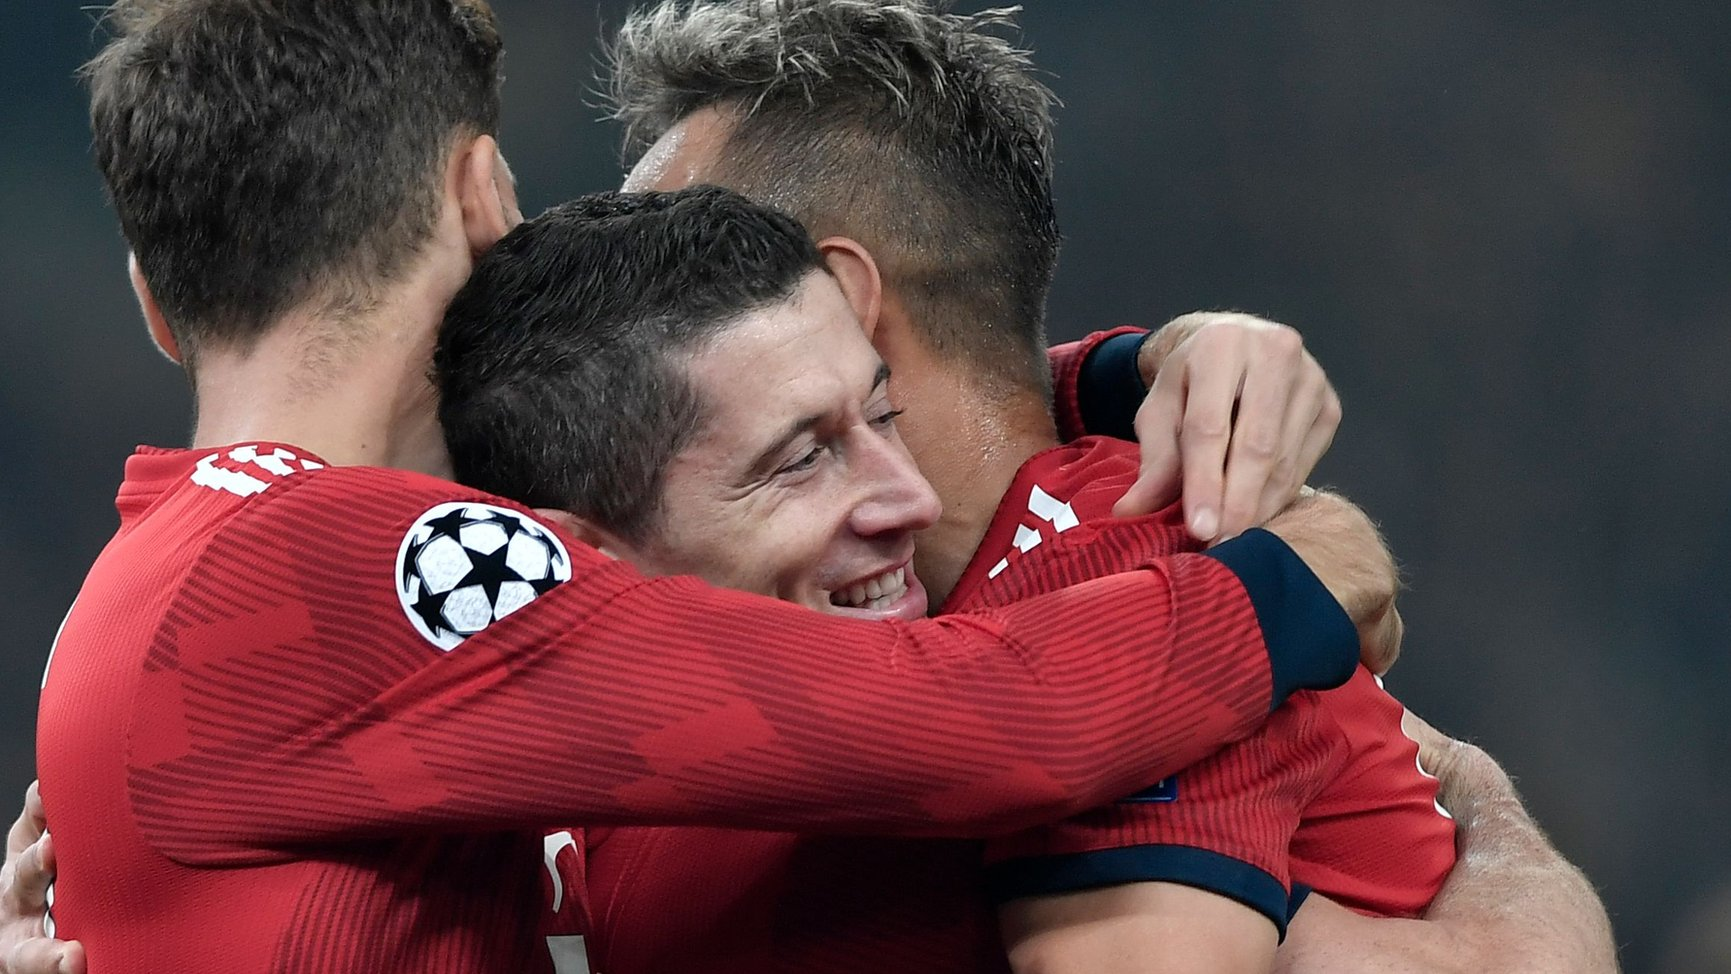 Quick Bayern double gives manager Kovac a boost